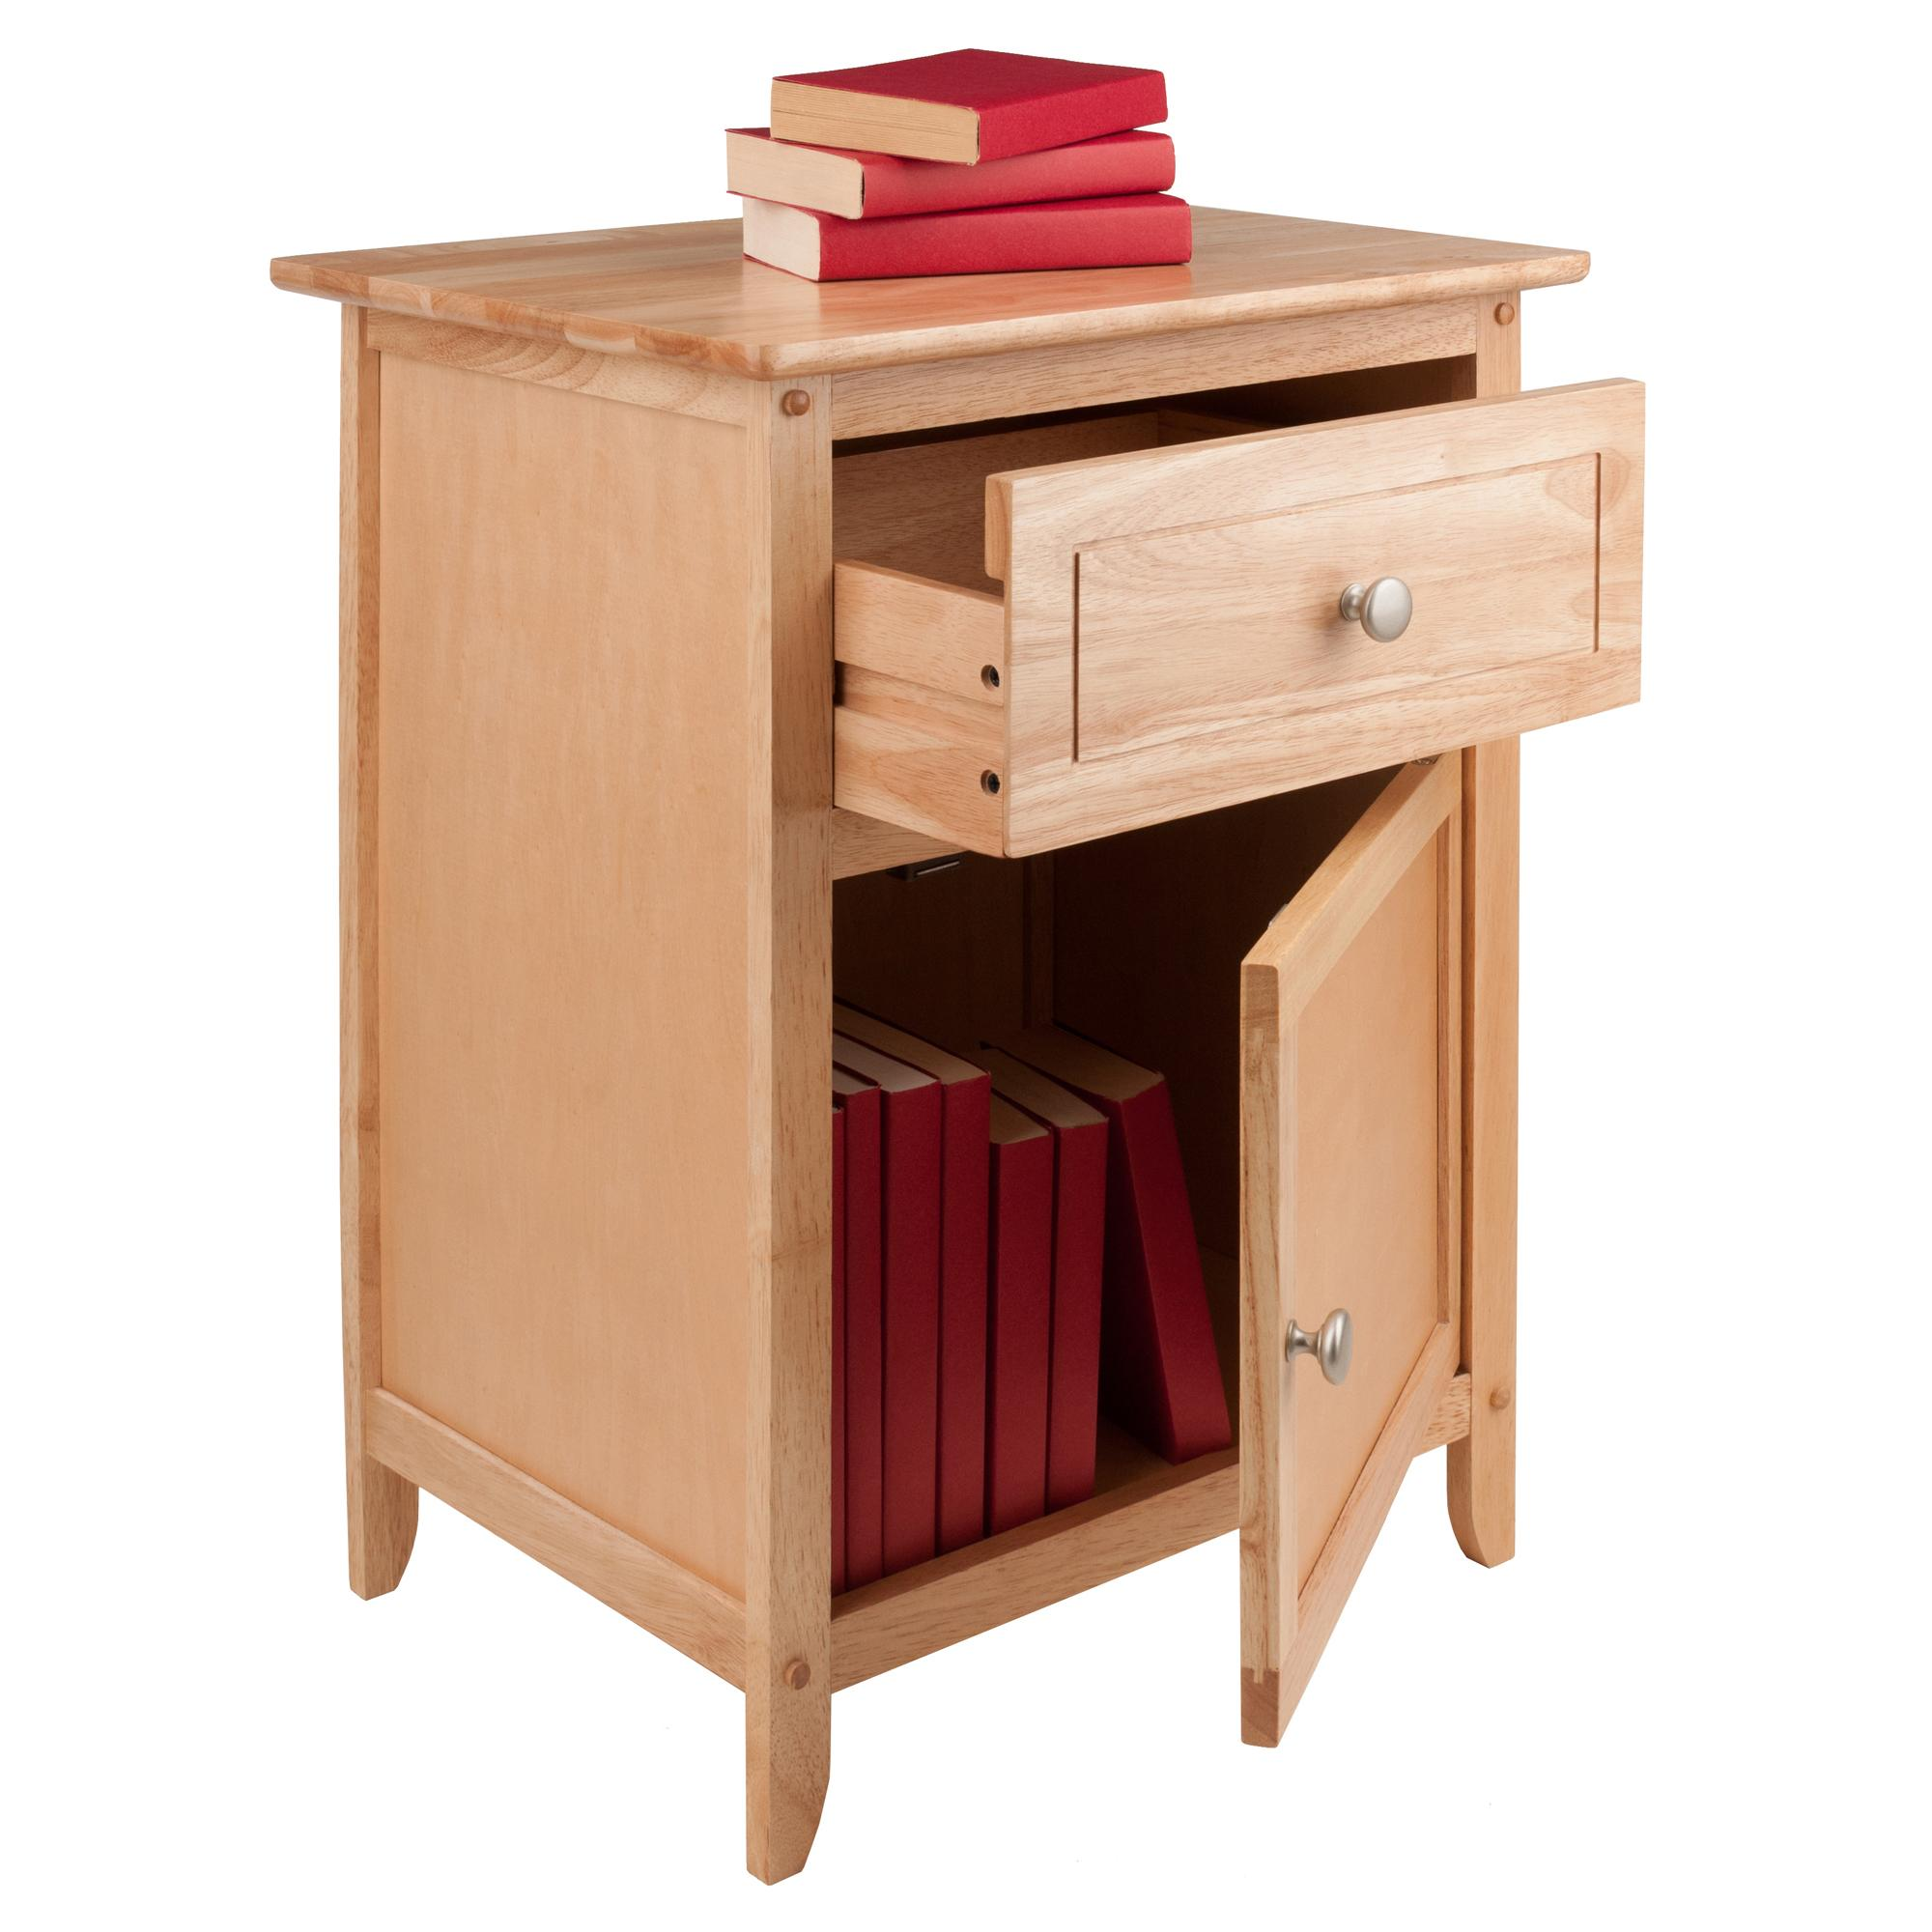 Kitchen Side Table: Amazon.com: Winsome Wood Natural Beechwood End/Accent